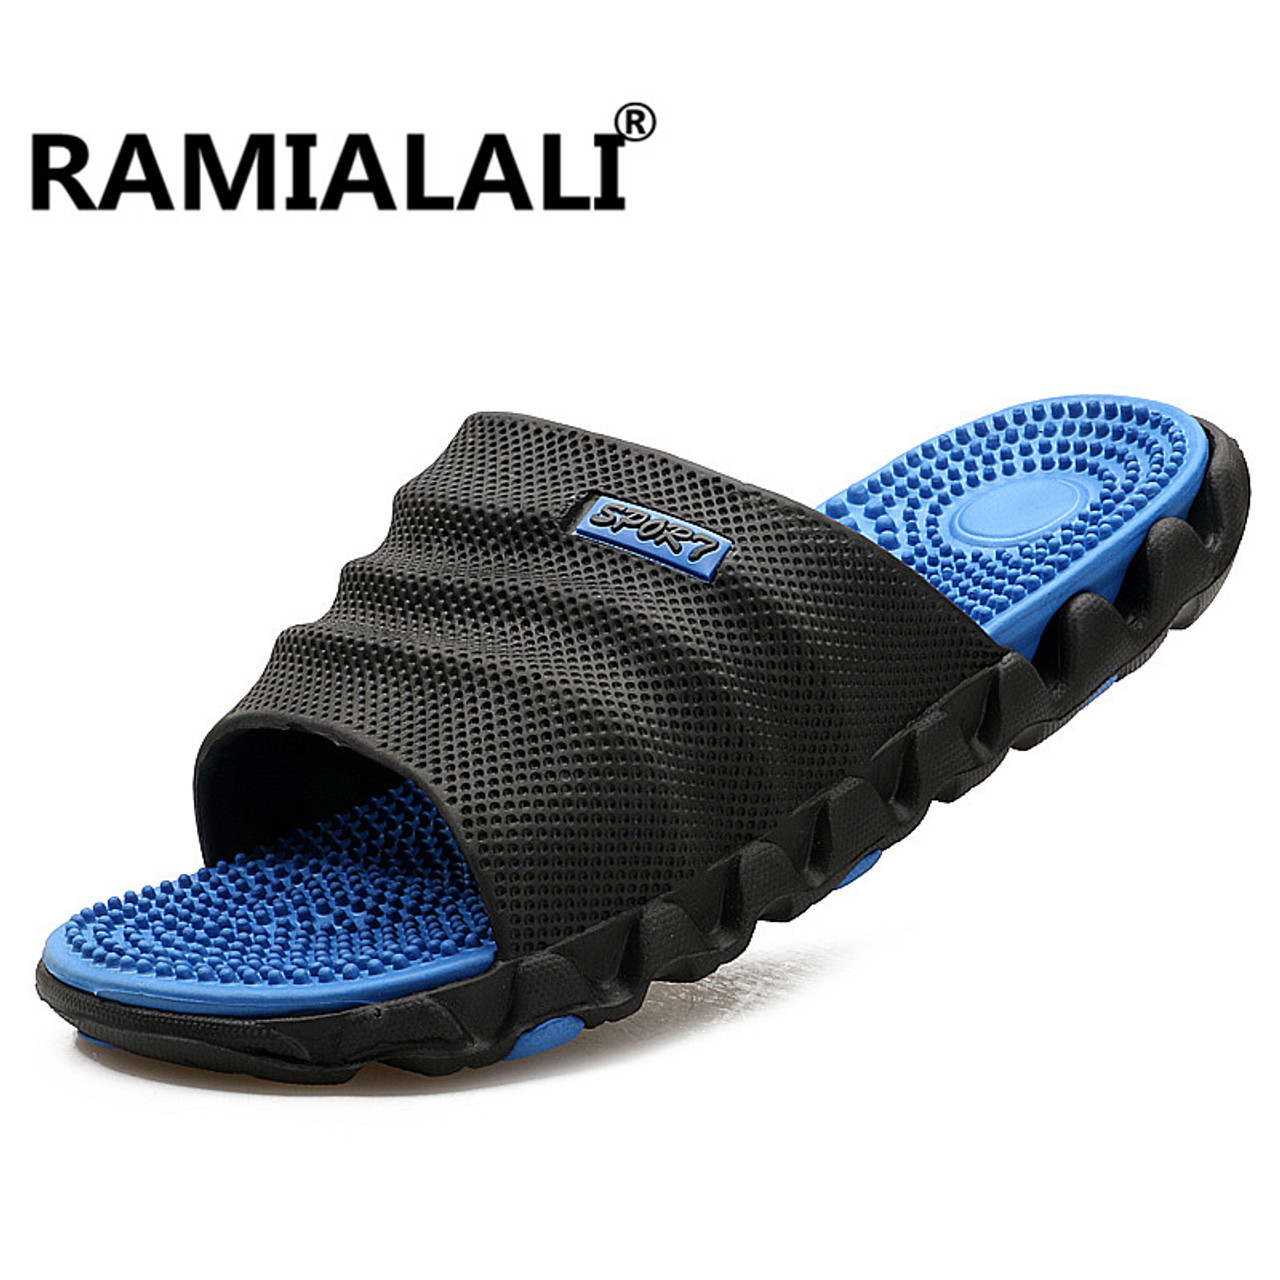 c153f3297 Ramialali Summer Slippers Men Casual Sandals Leisure Soft Slides Eva Massage  Beach Slippers Water Shoes Men s ...